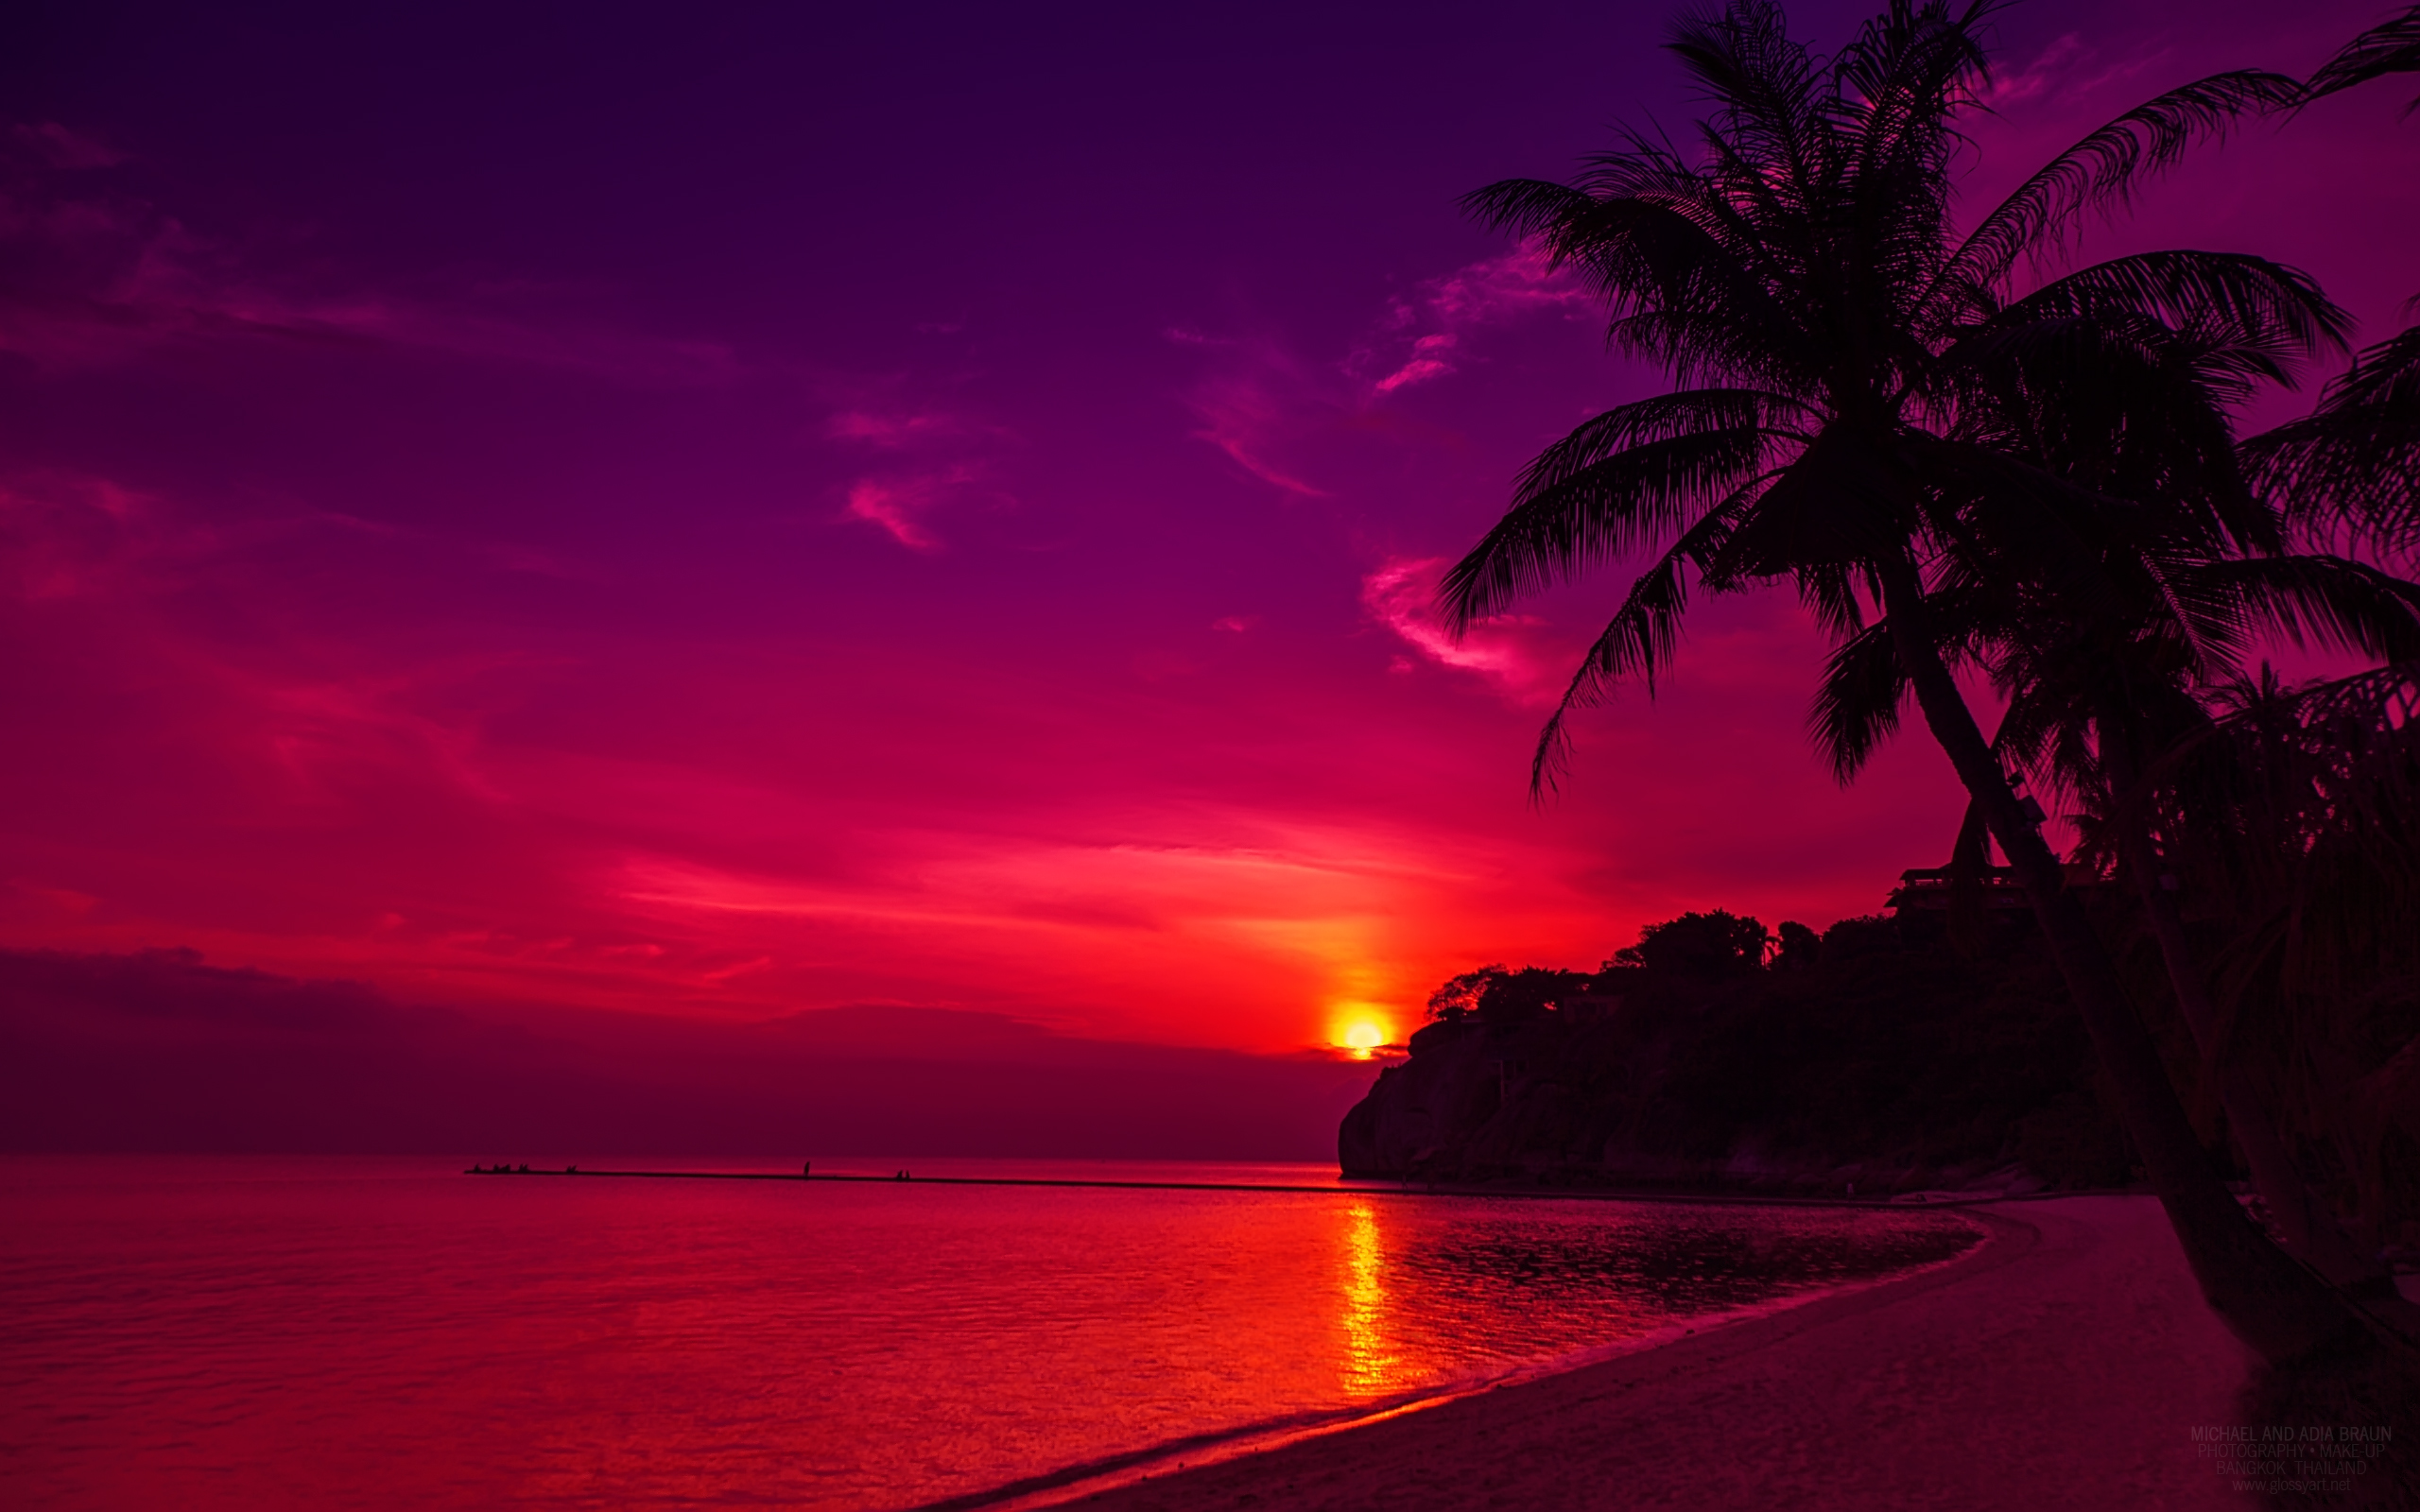 Beautiful Sunset HD Wallpaper Wide Screen Wallpaper 2560x1600